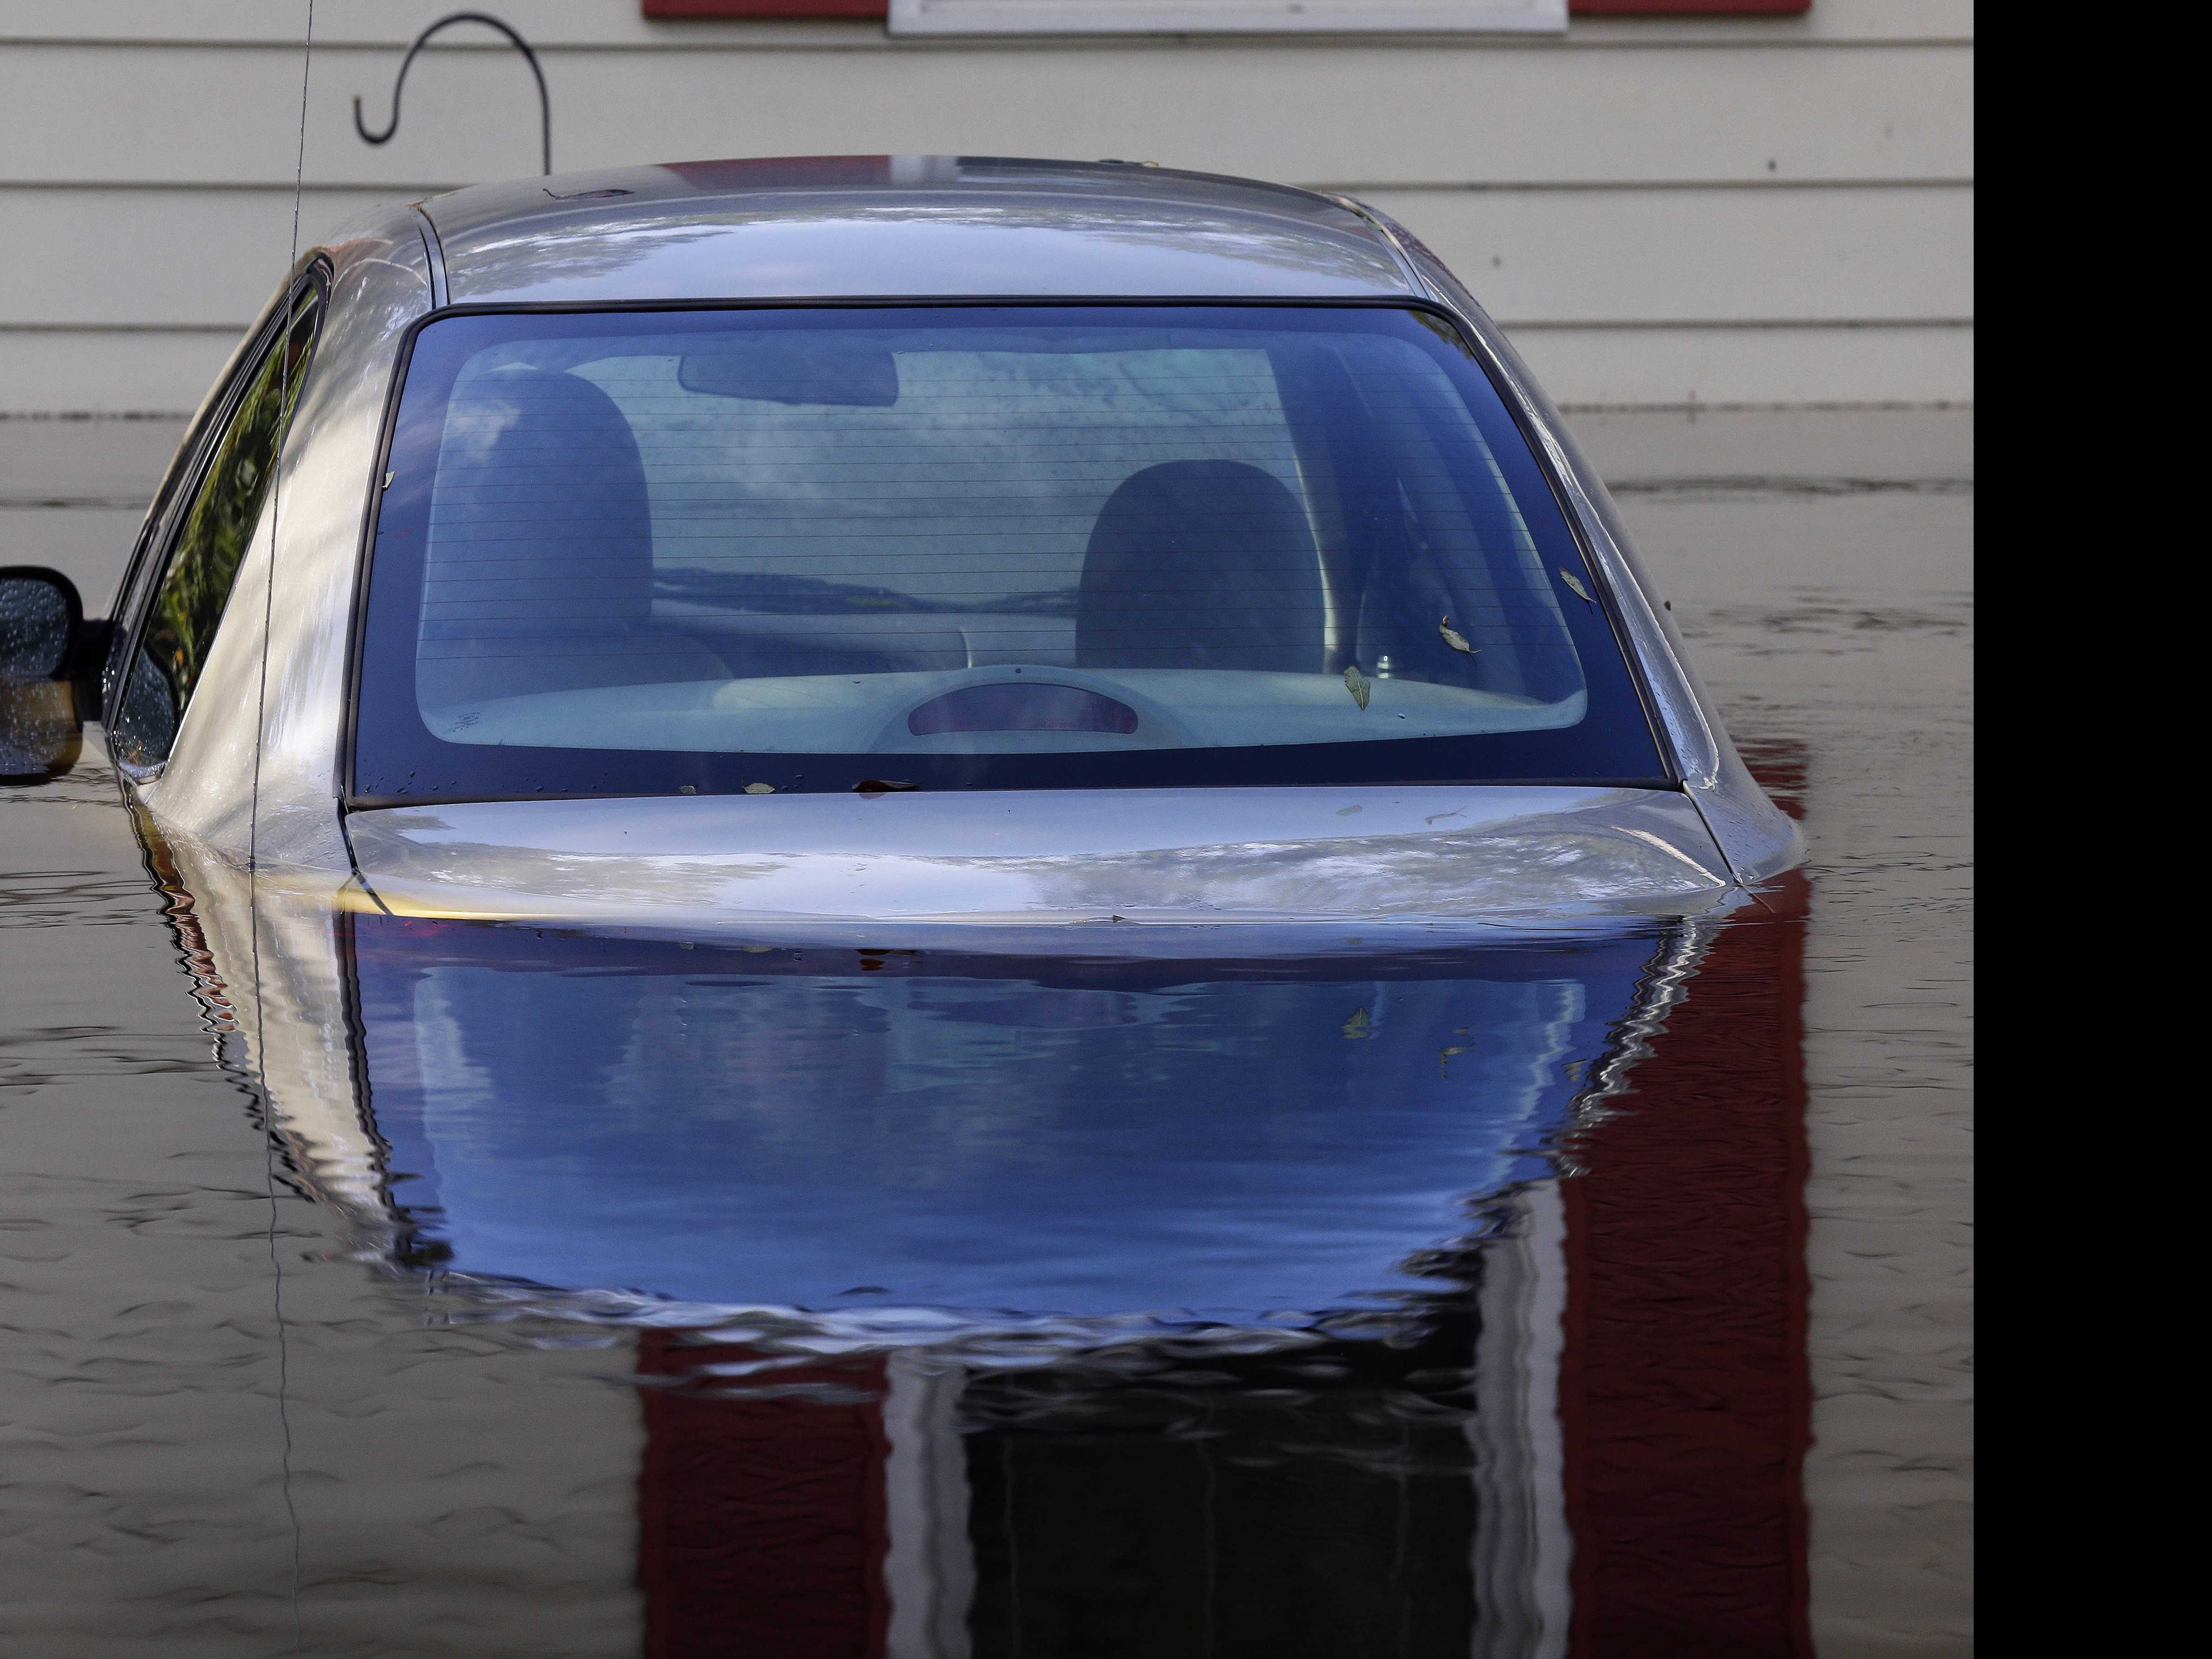 Thousands of Cars Will Be Damaged by Florence's Floods